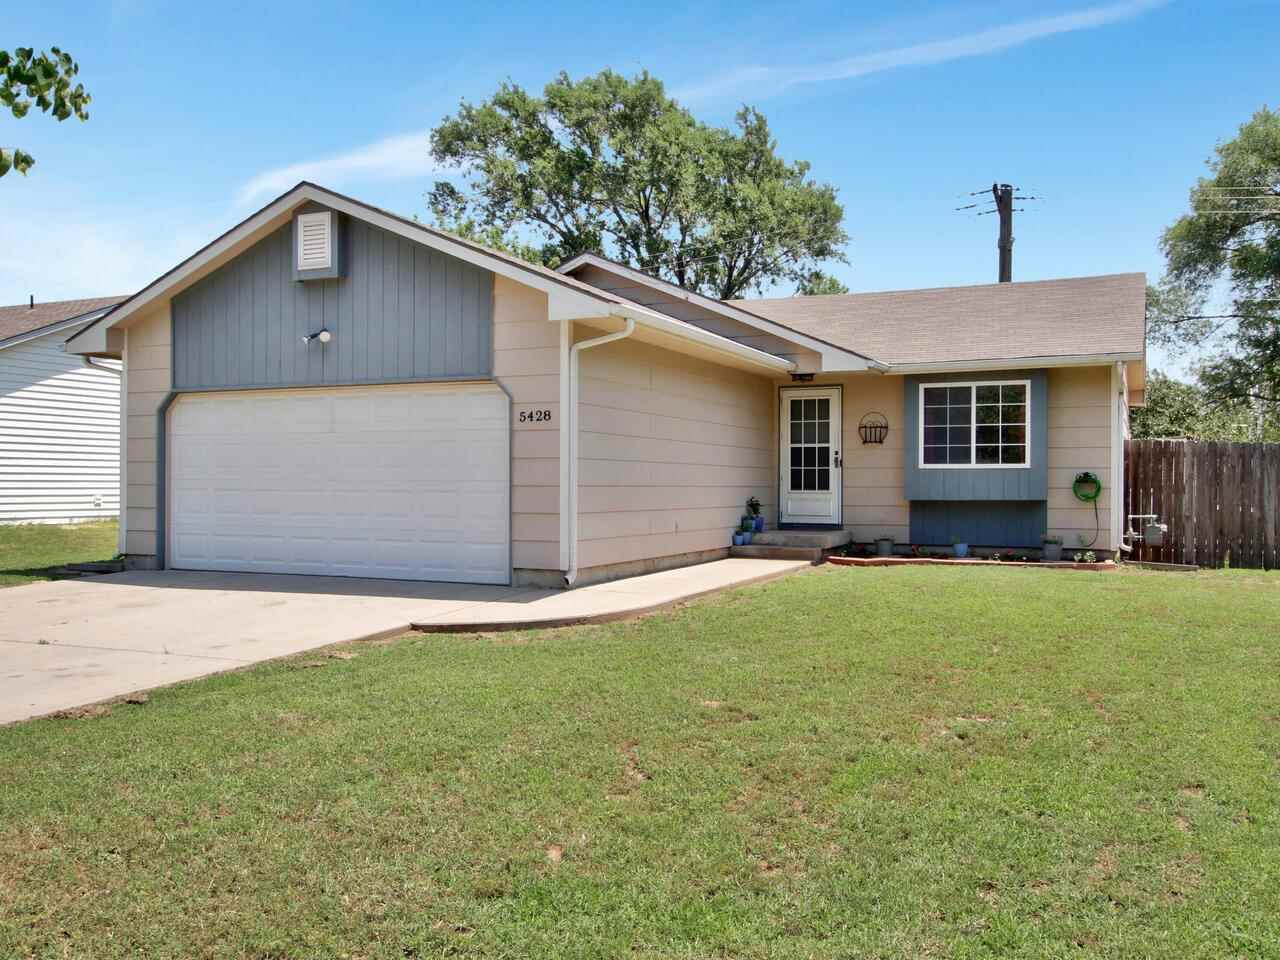 Step into this charmingly well-maintained 3 bed, 2 bath ranch with a 2 car attached garage. Upstairs